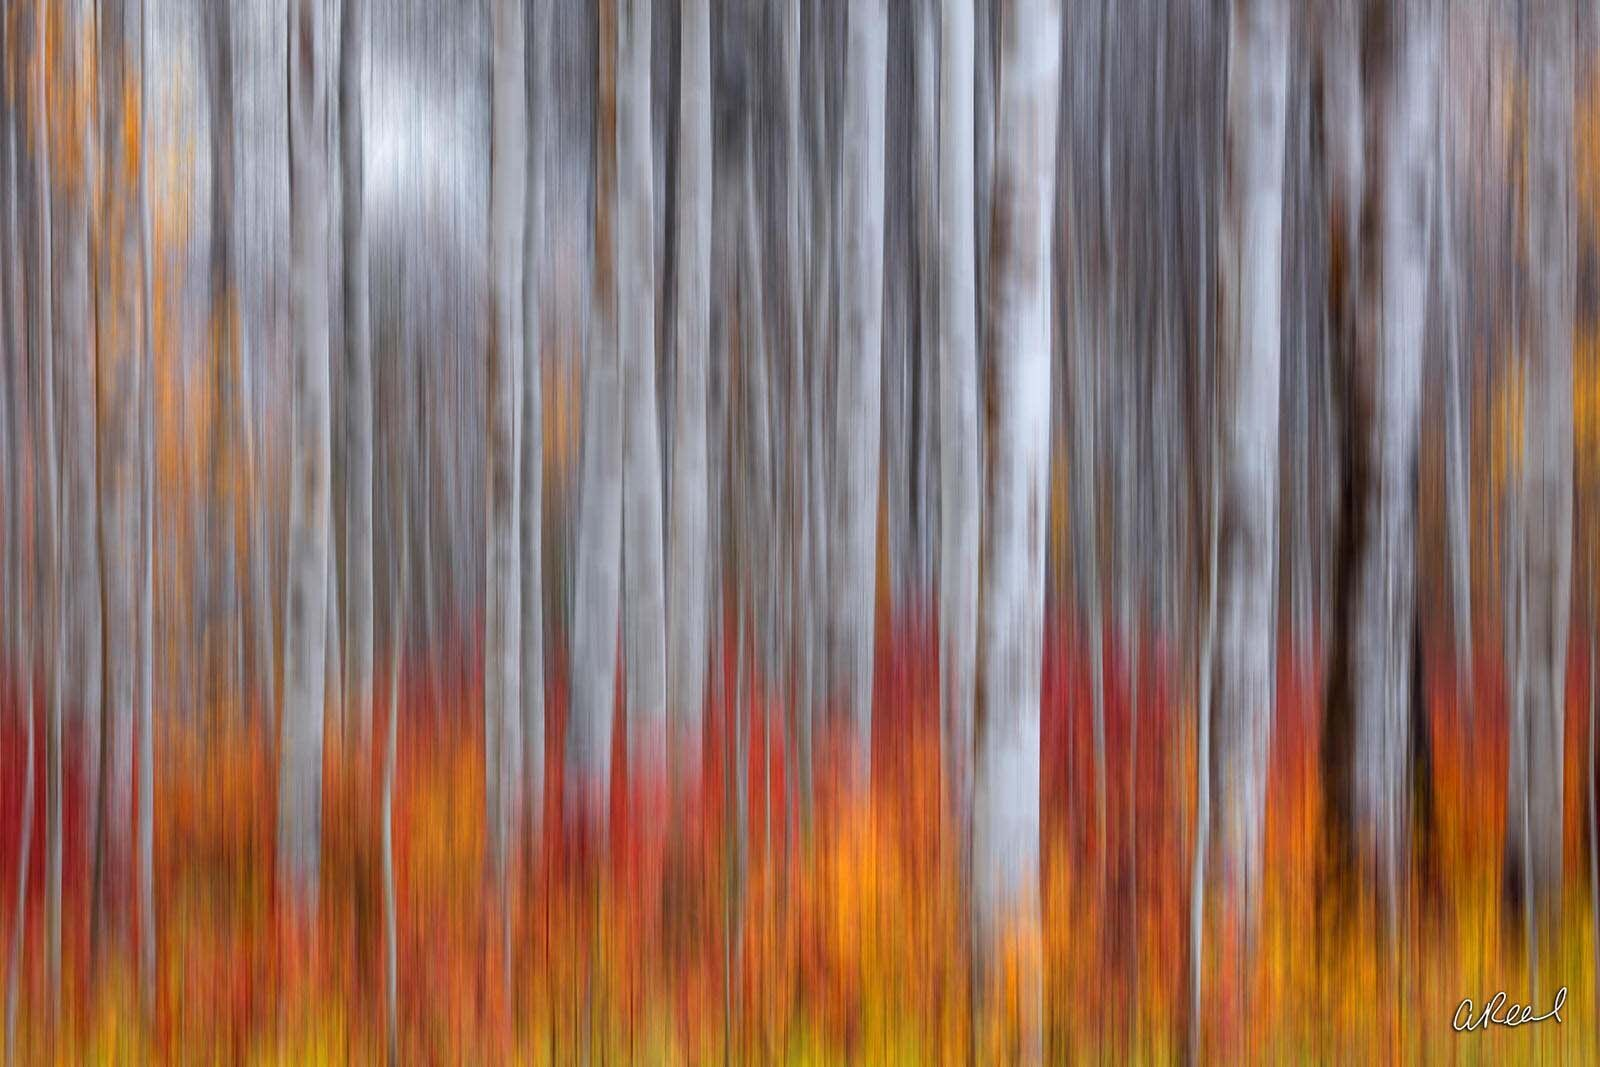 ICM, Image, Creative, Artistic, Leavenworth, Washington, Movement, Fine Art, Limited Edition, abstract , photo